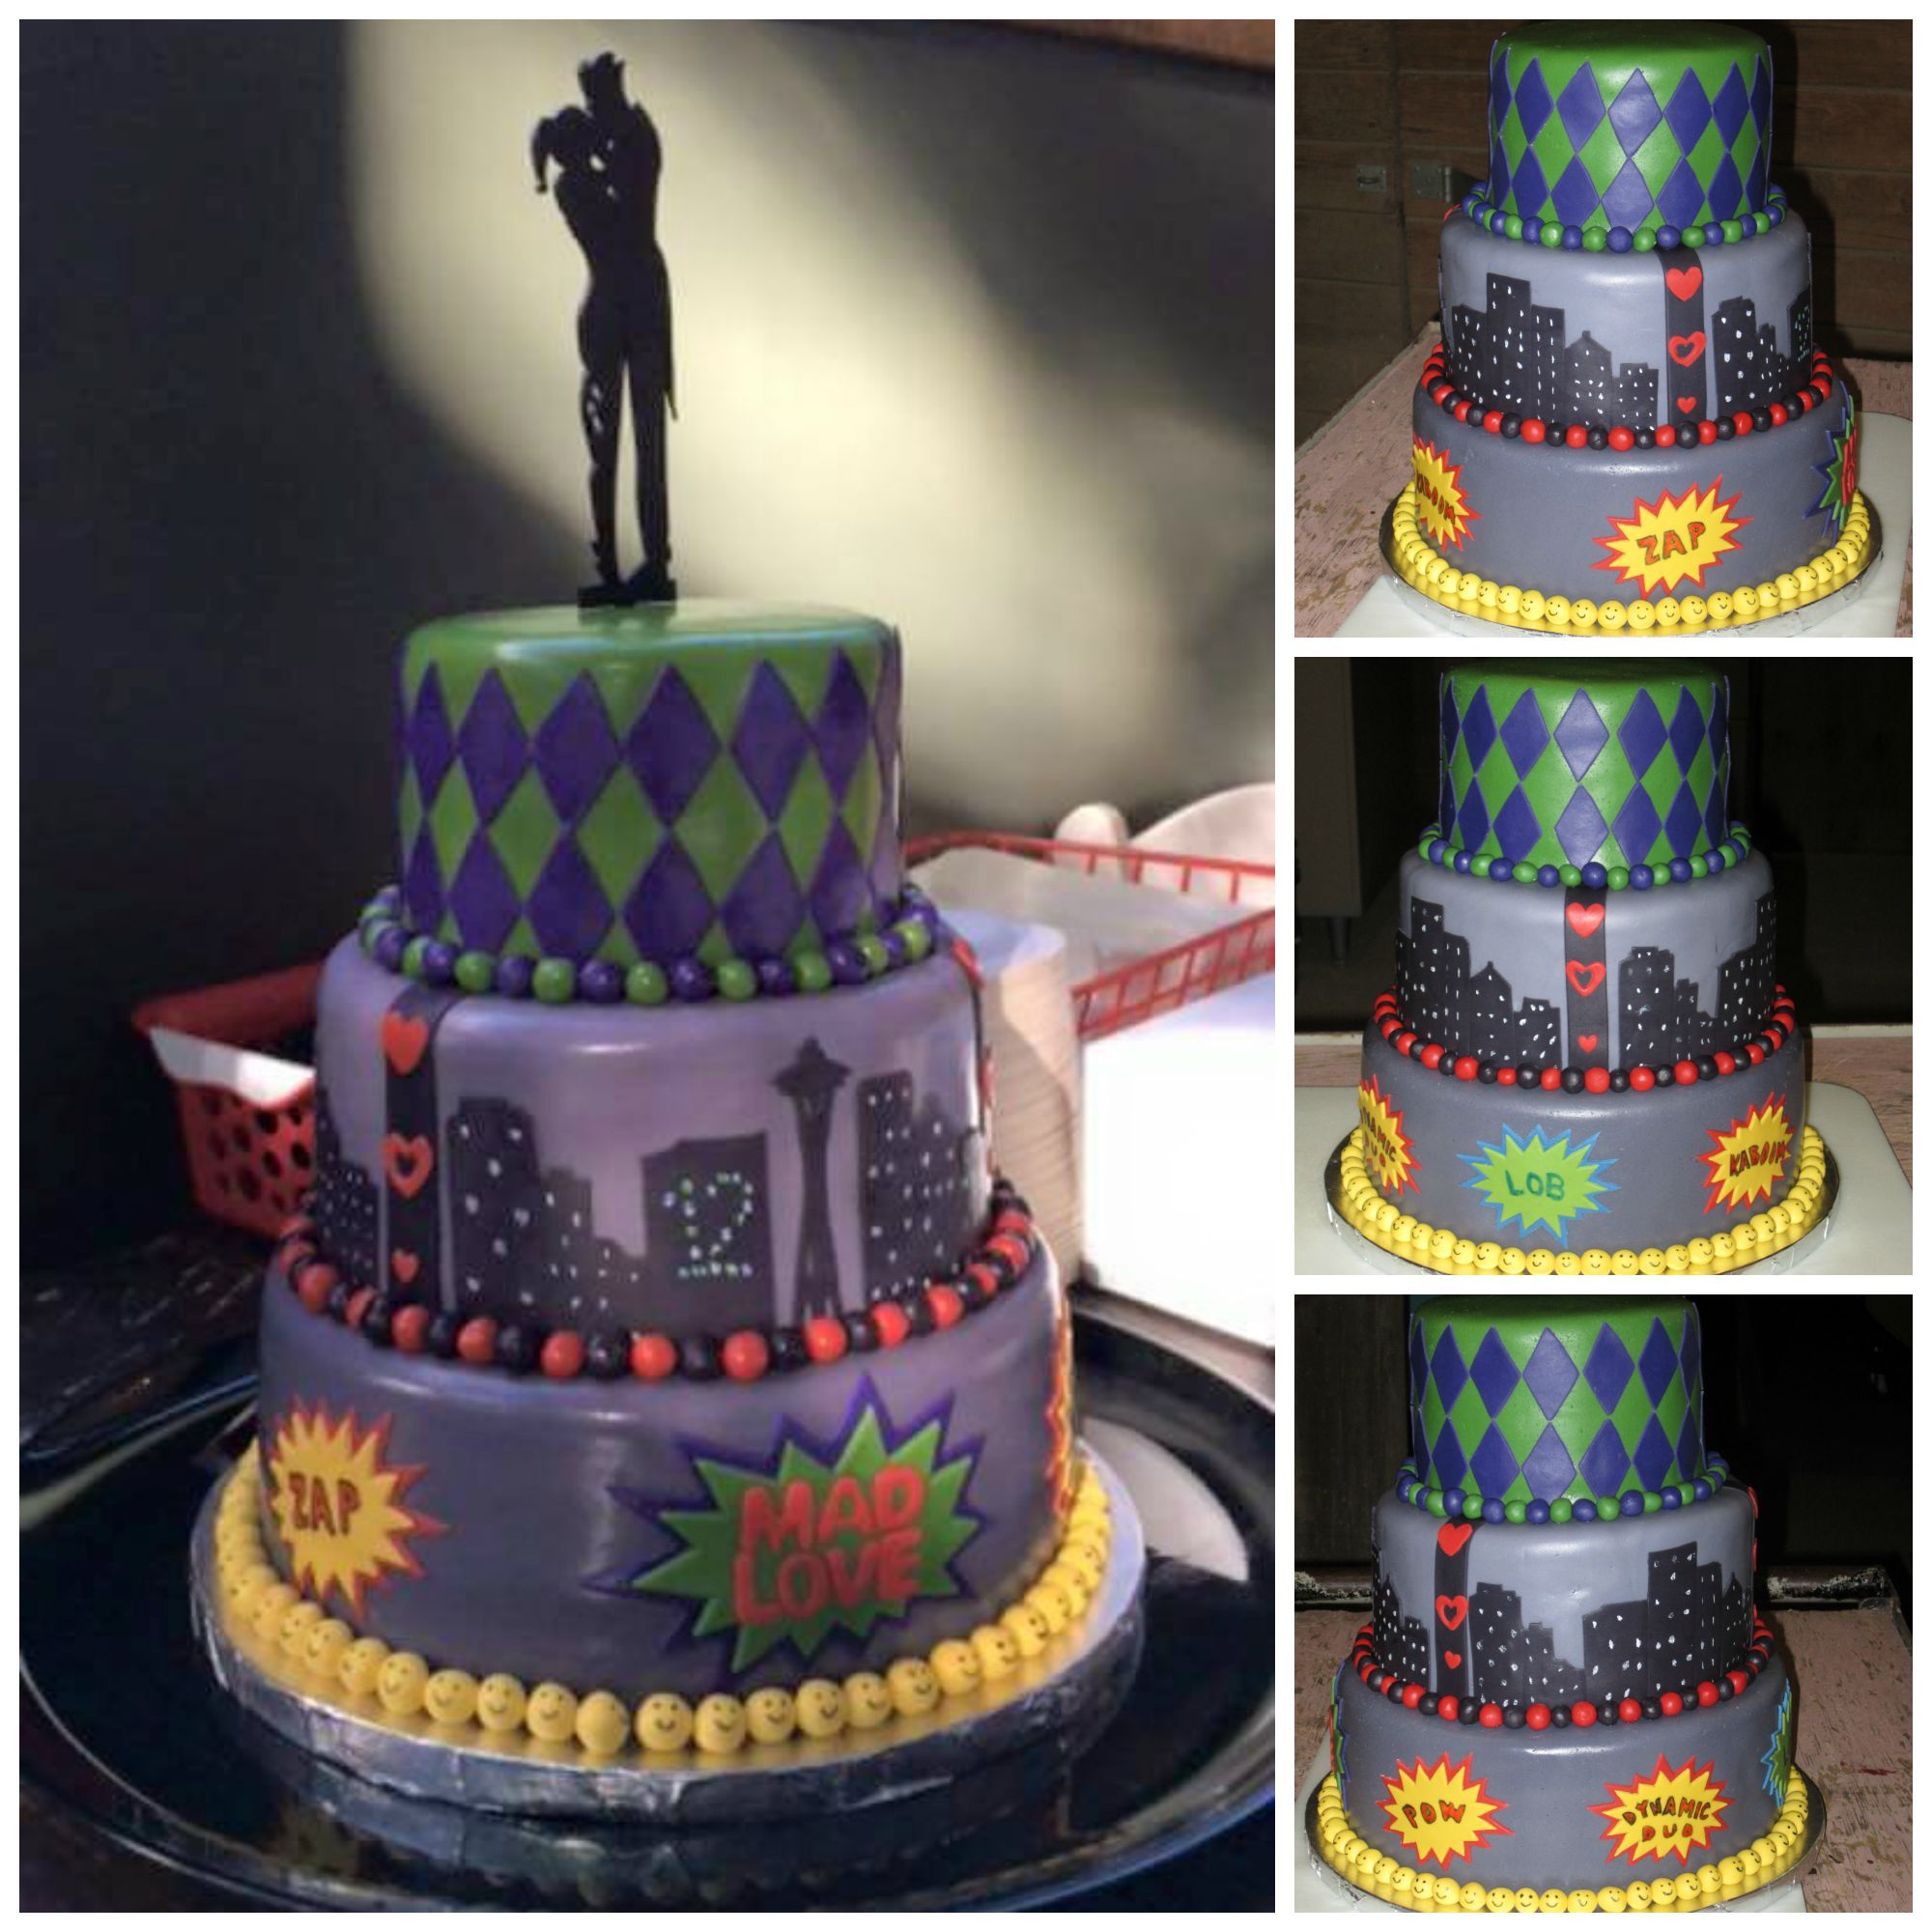 joker and harley quinn themed wedding cake, complete with a